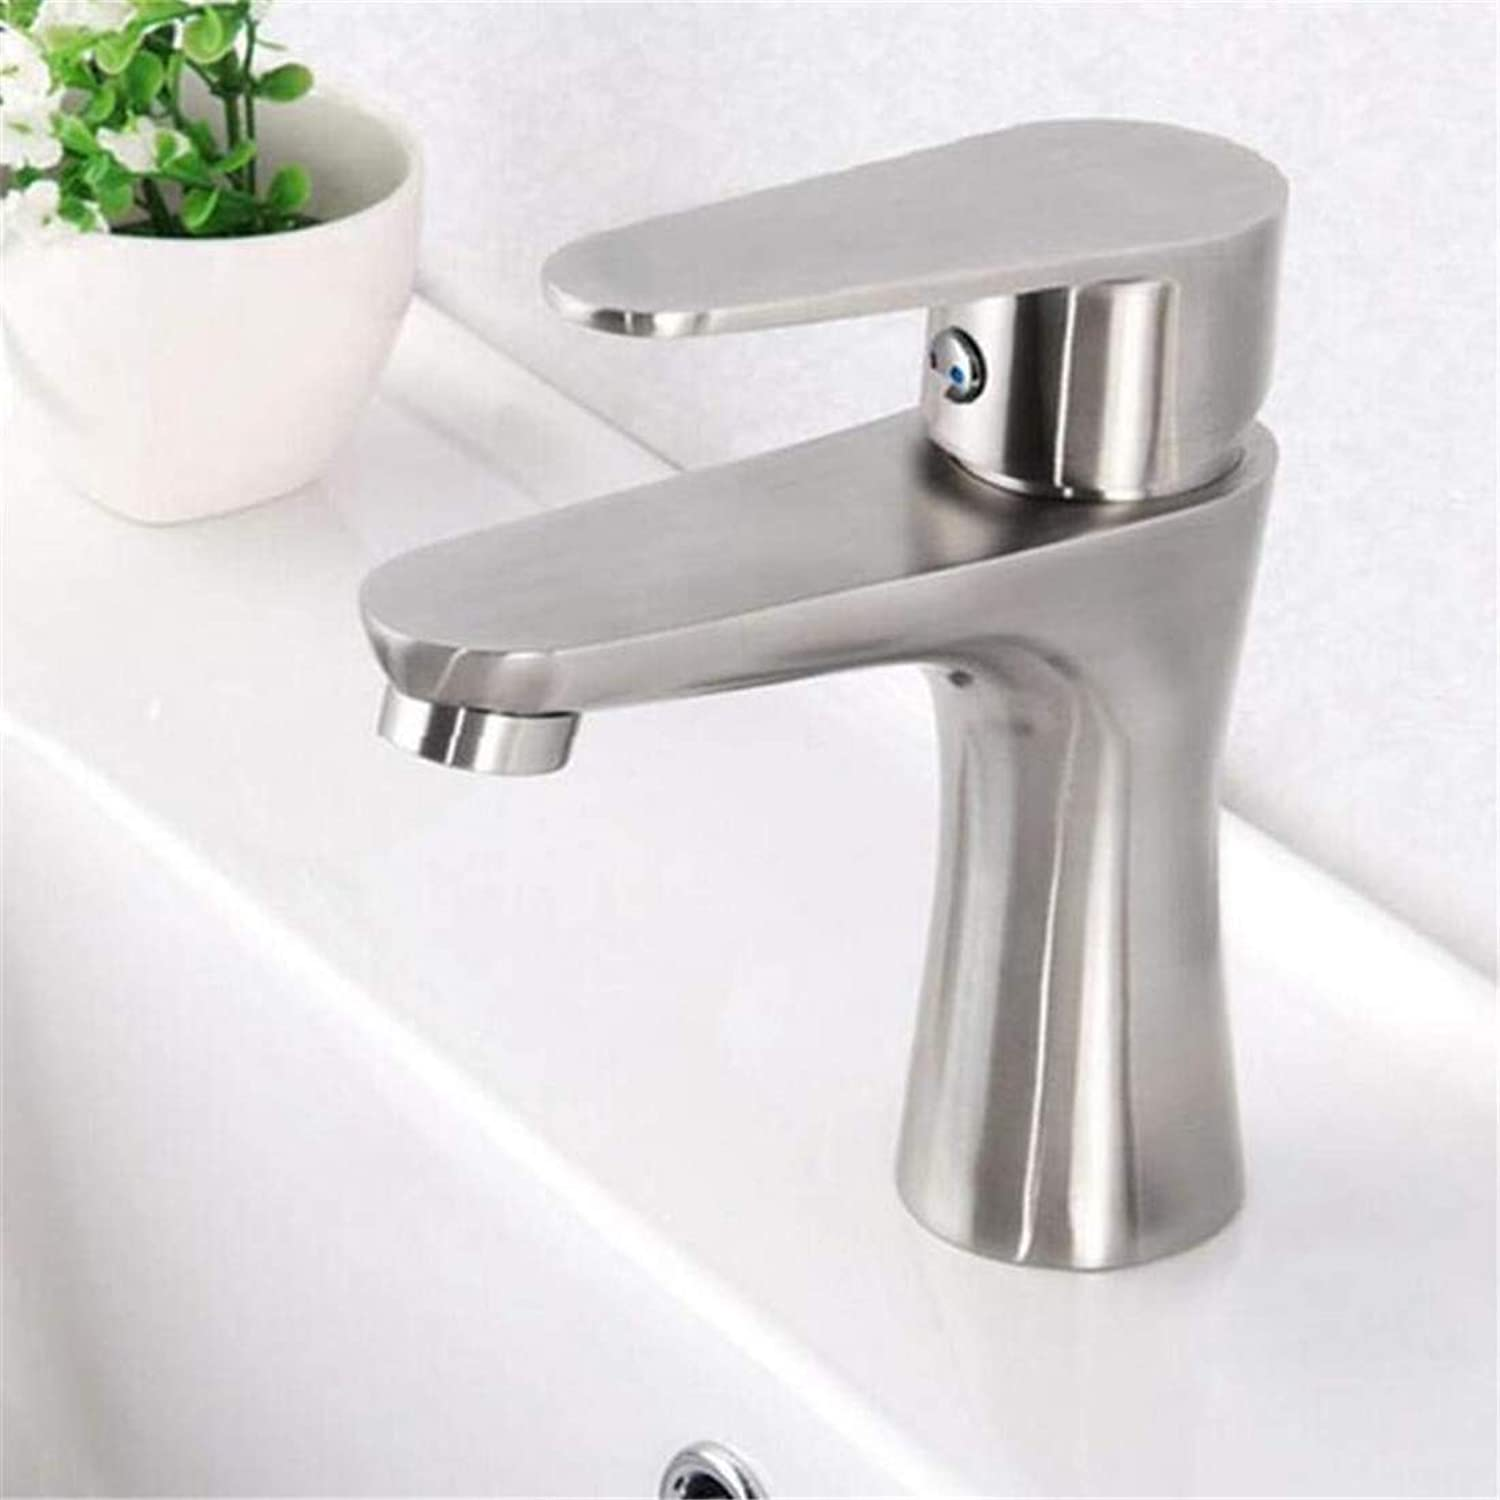 Faucet Vintage Plated Kitchen Bathroom Faucet Faucet Mixer Single Hole Bathroom Basin Faucet Hot &Cold Water Tap High Class Brushed Deck Mounted Water Tap